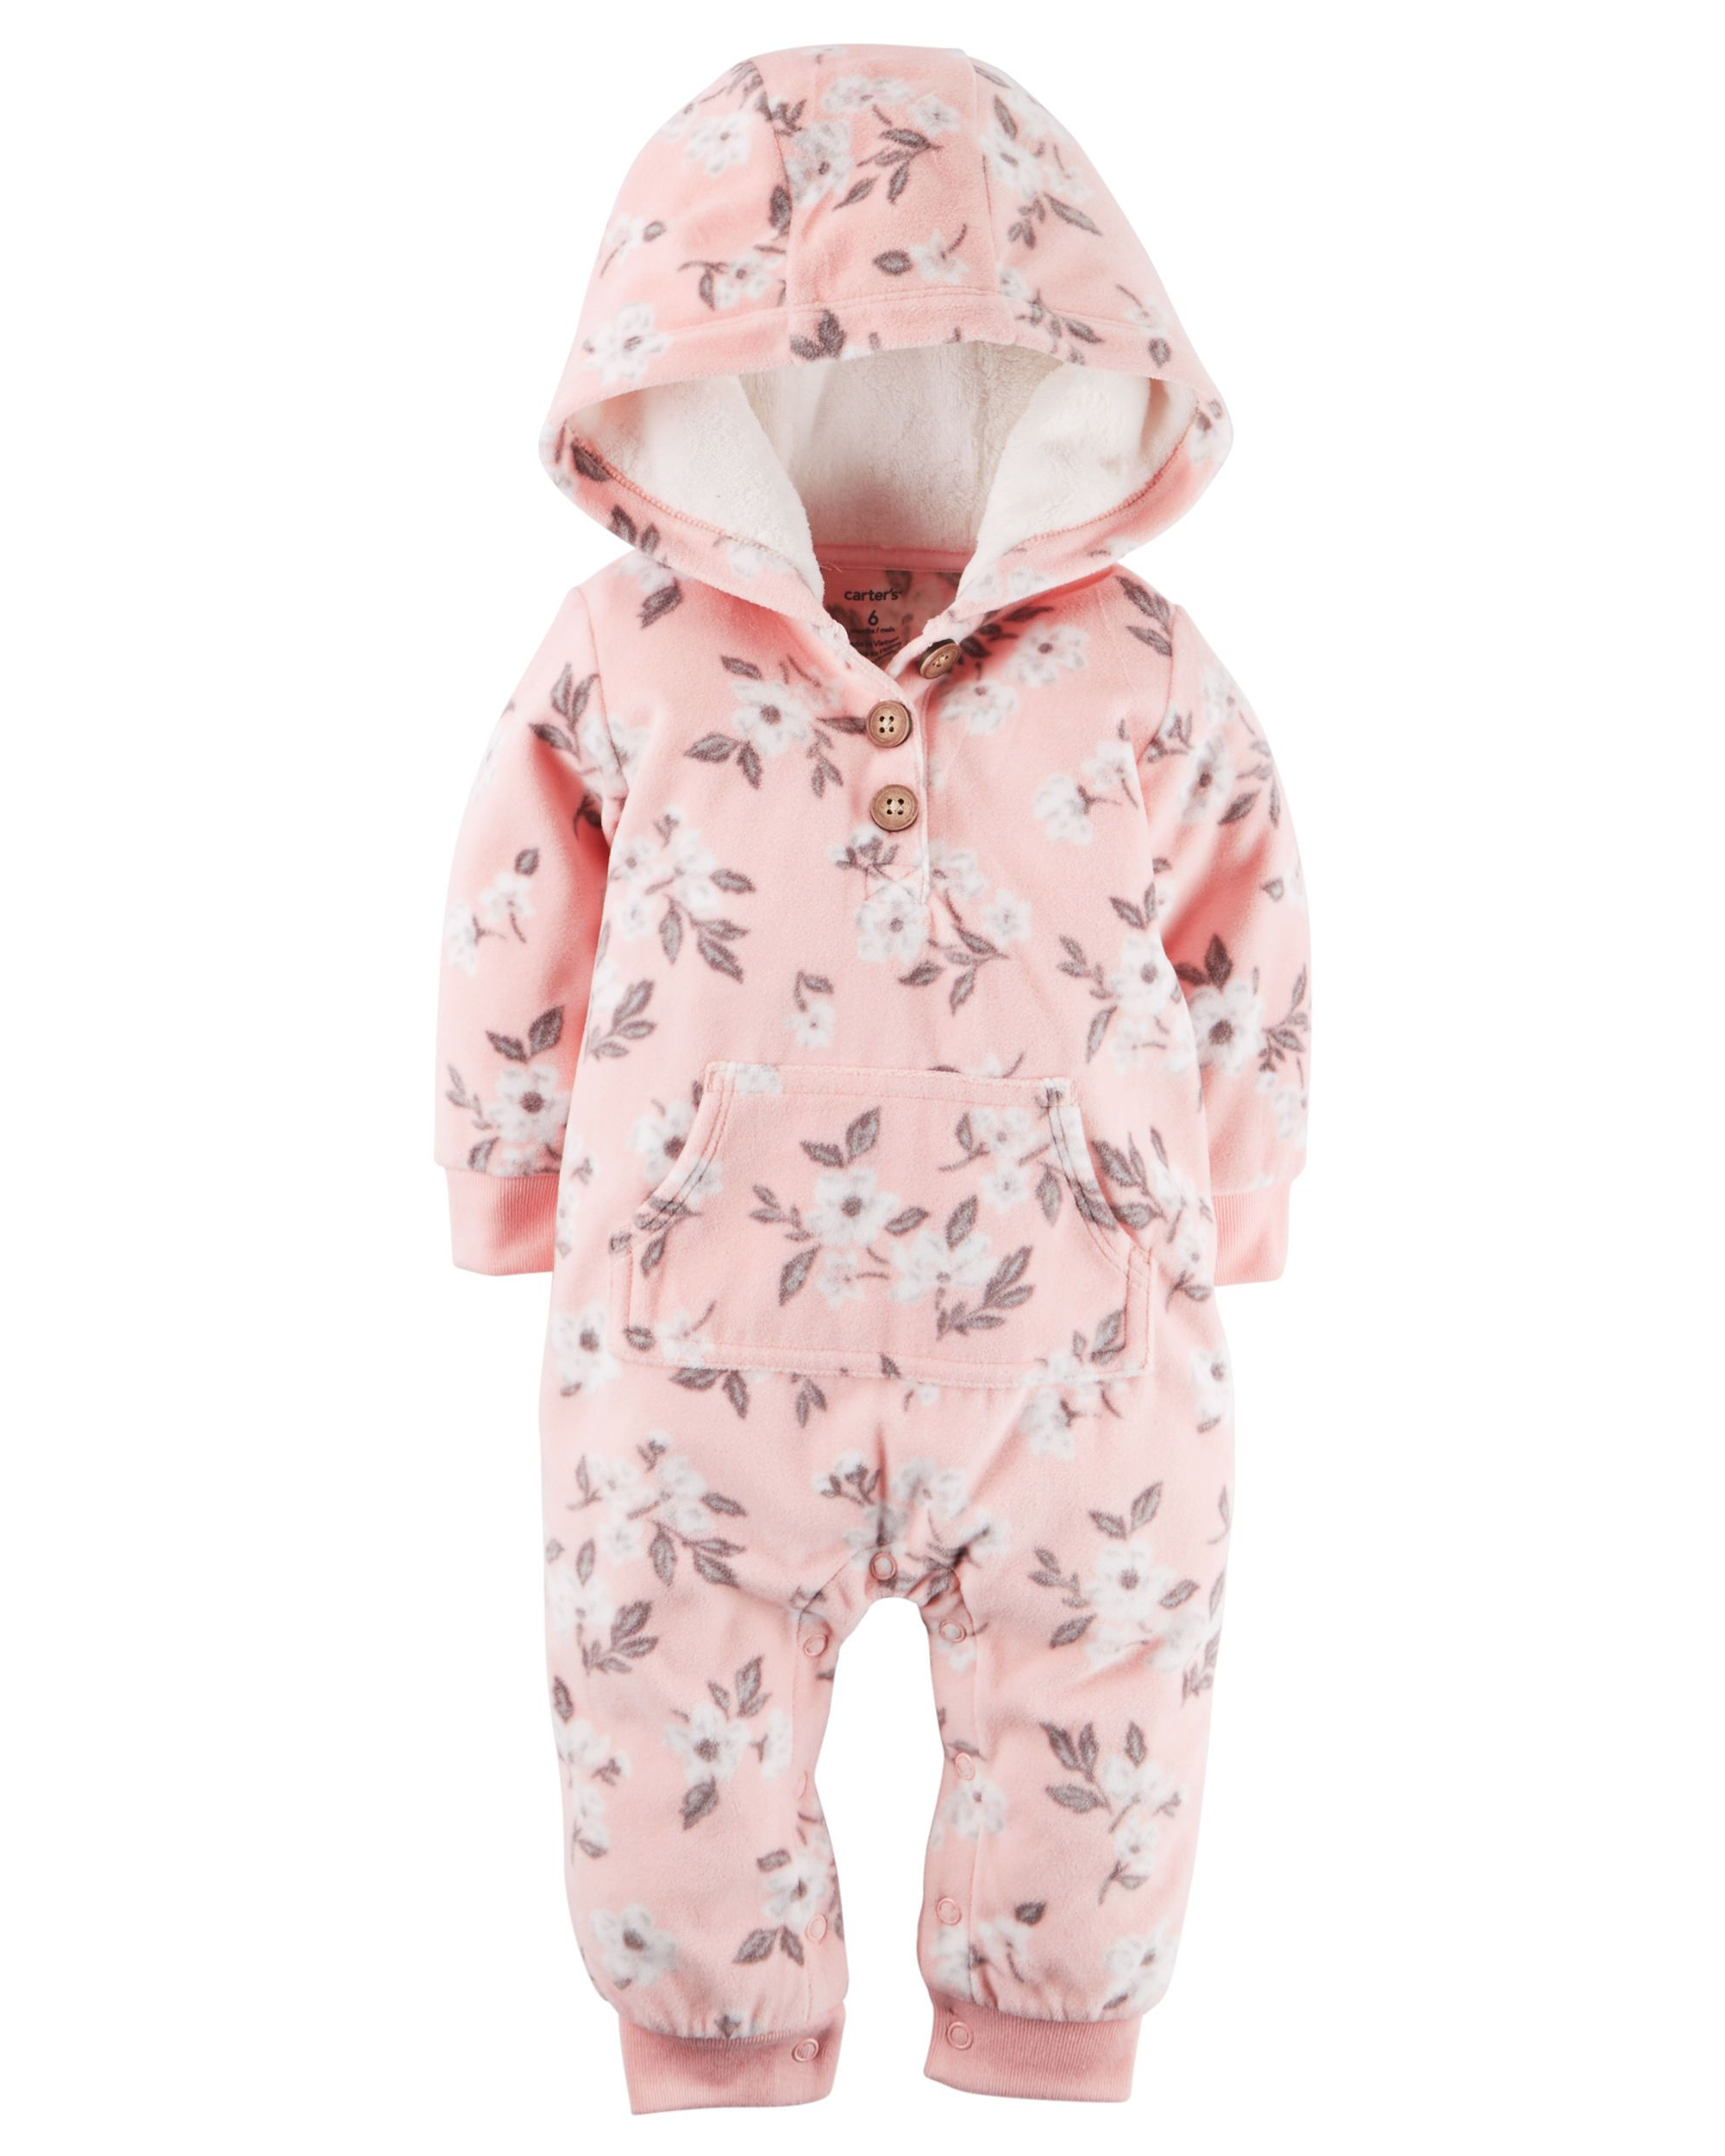 9e79a1451cde Baby Girl Hooded Fleece Jumpsuit